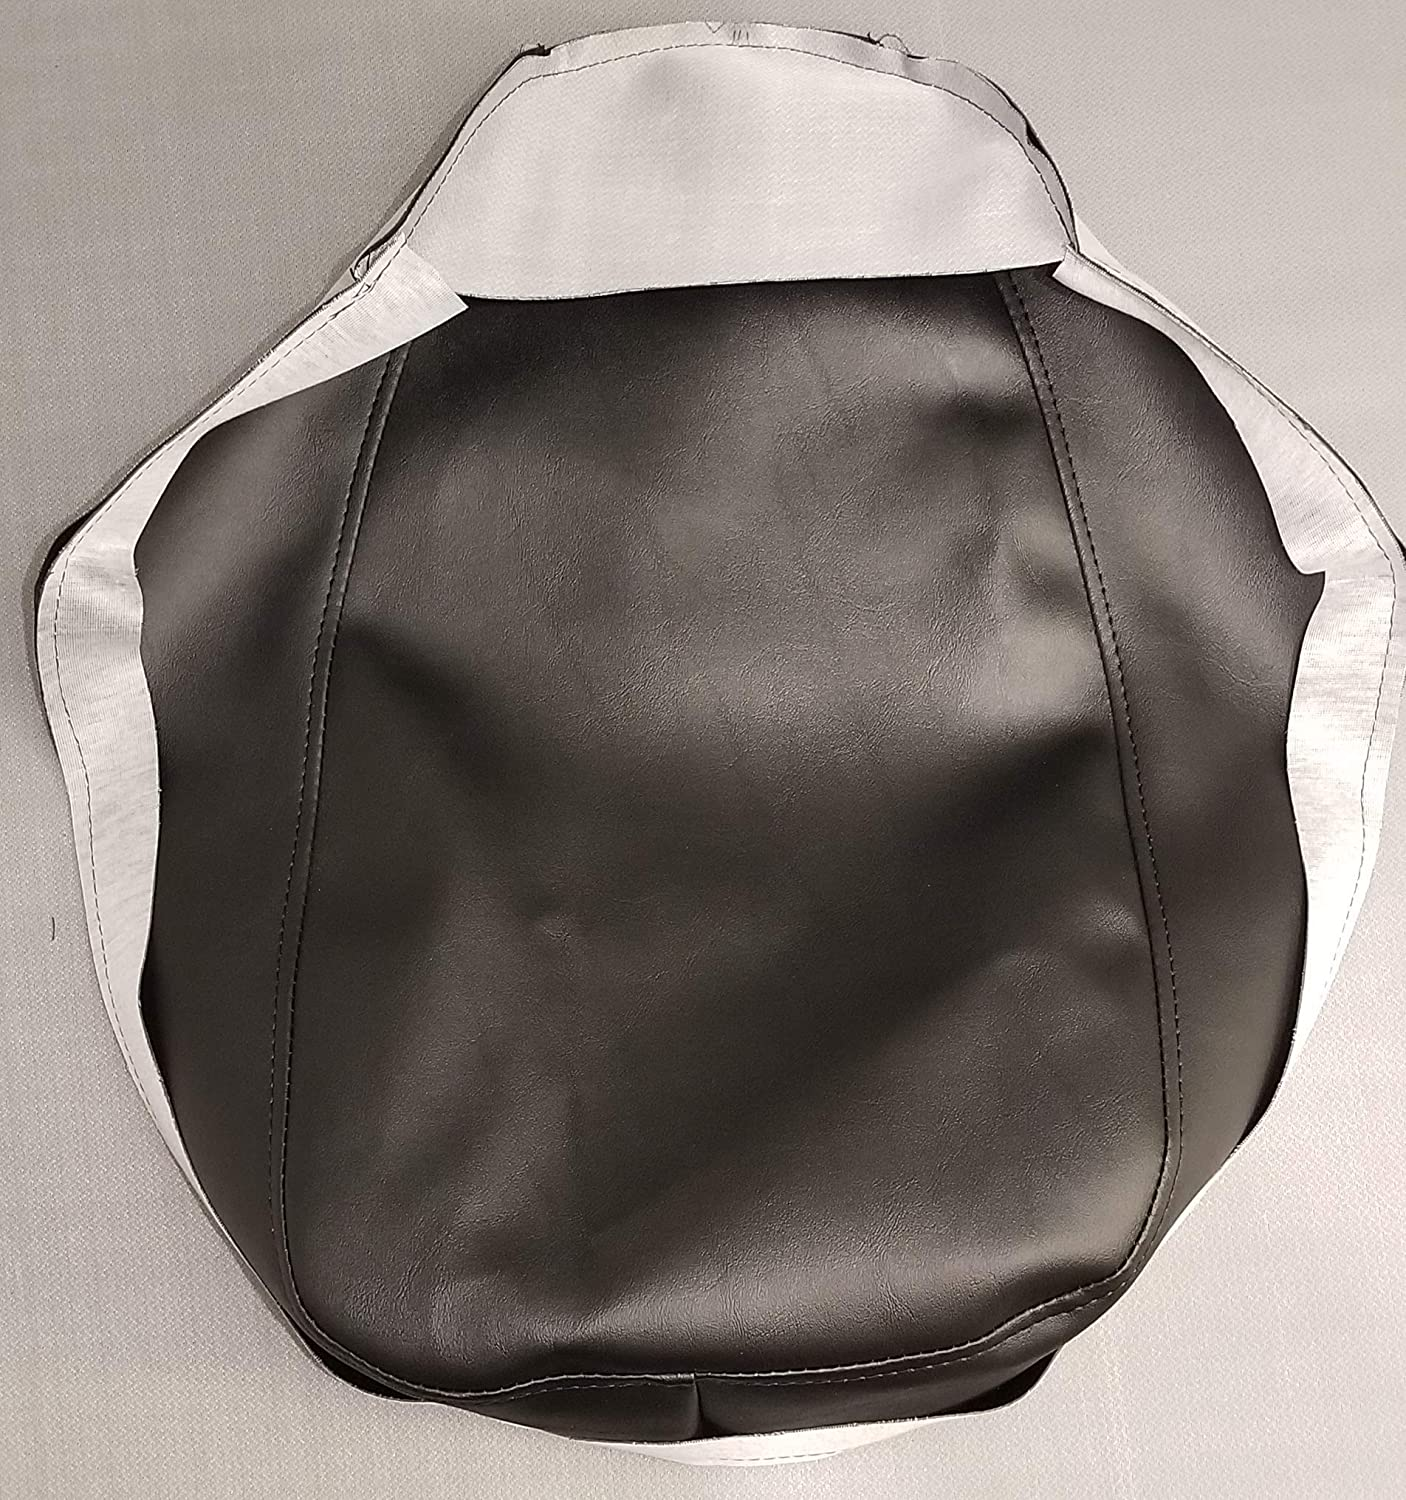 ATC 185 ATC 200 1983 1980 1982 FitCovers black replacement seat cover for HONDA 80-83 ATC185 or 81-83 ATC200 1981